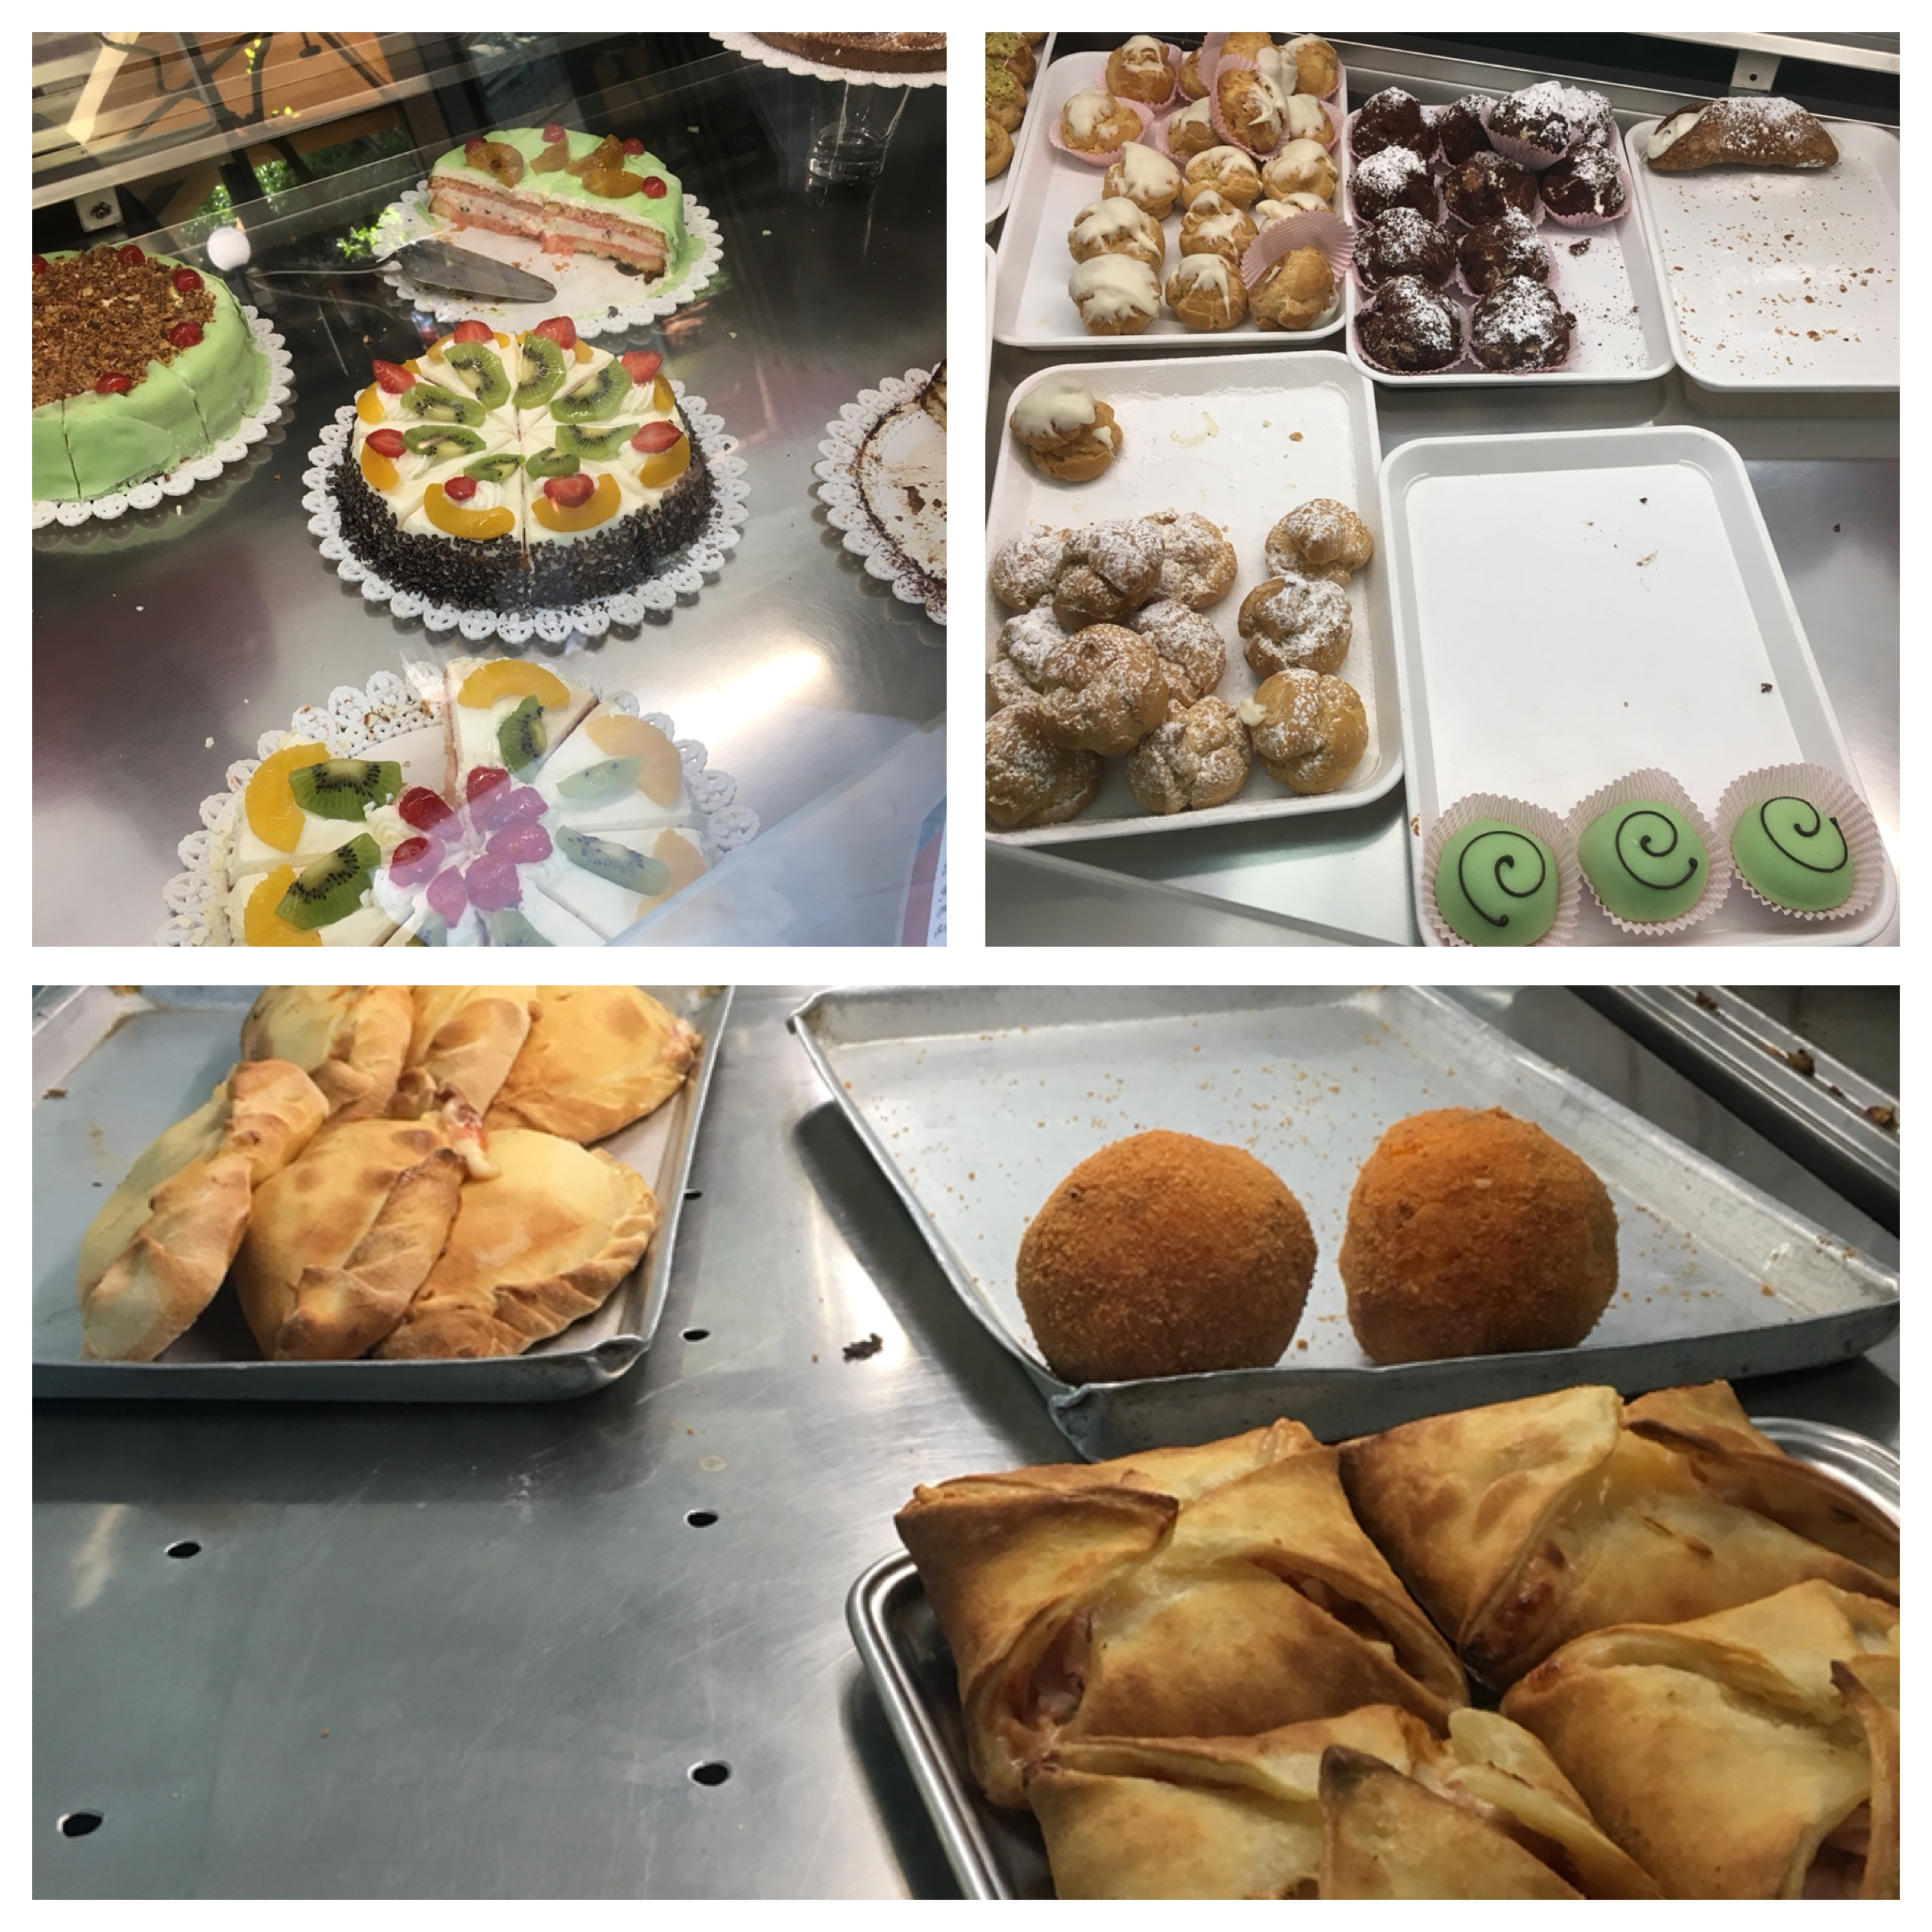 Cassate, small pastry, arancini and calzoni. Caltagirone